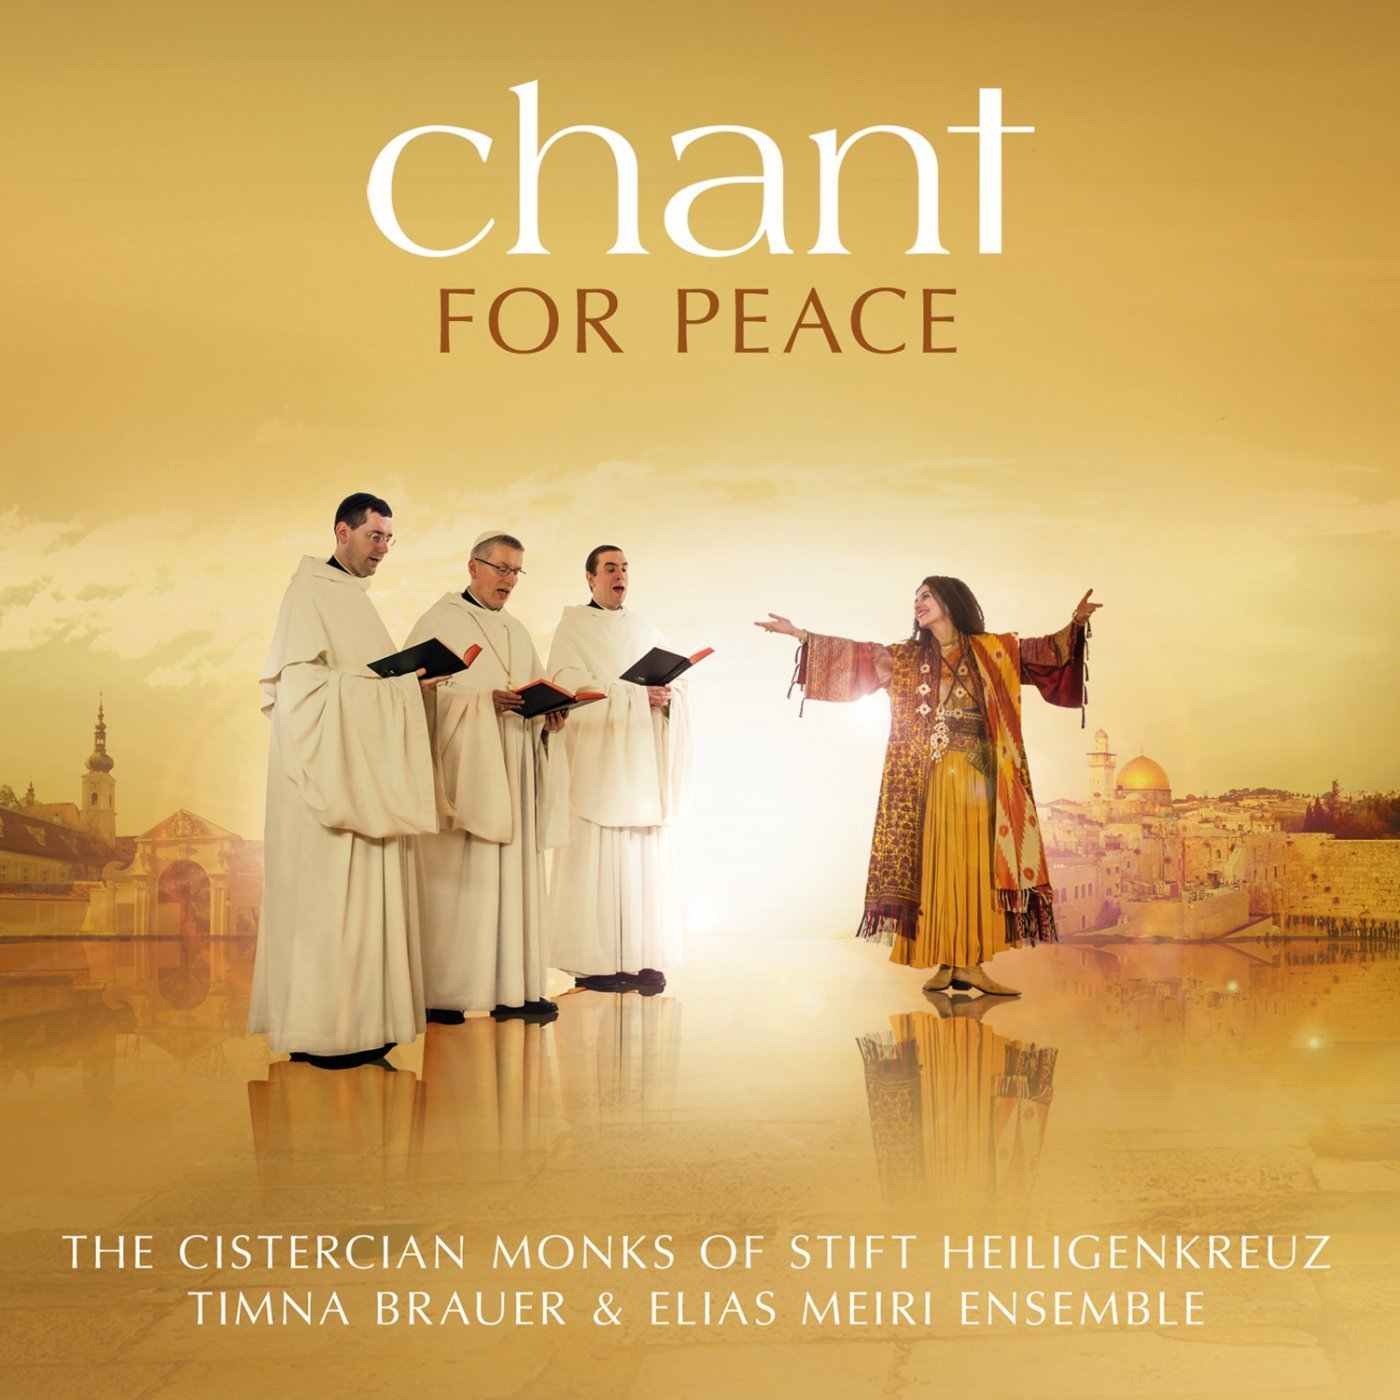 CISTERCIAN MONKS OF STIFT HEIL - CHANT FOR PEACE (CD)